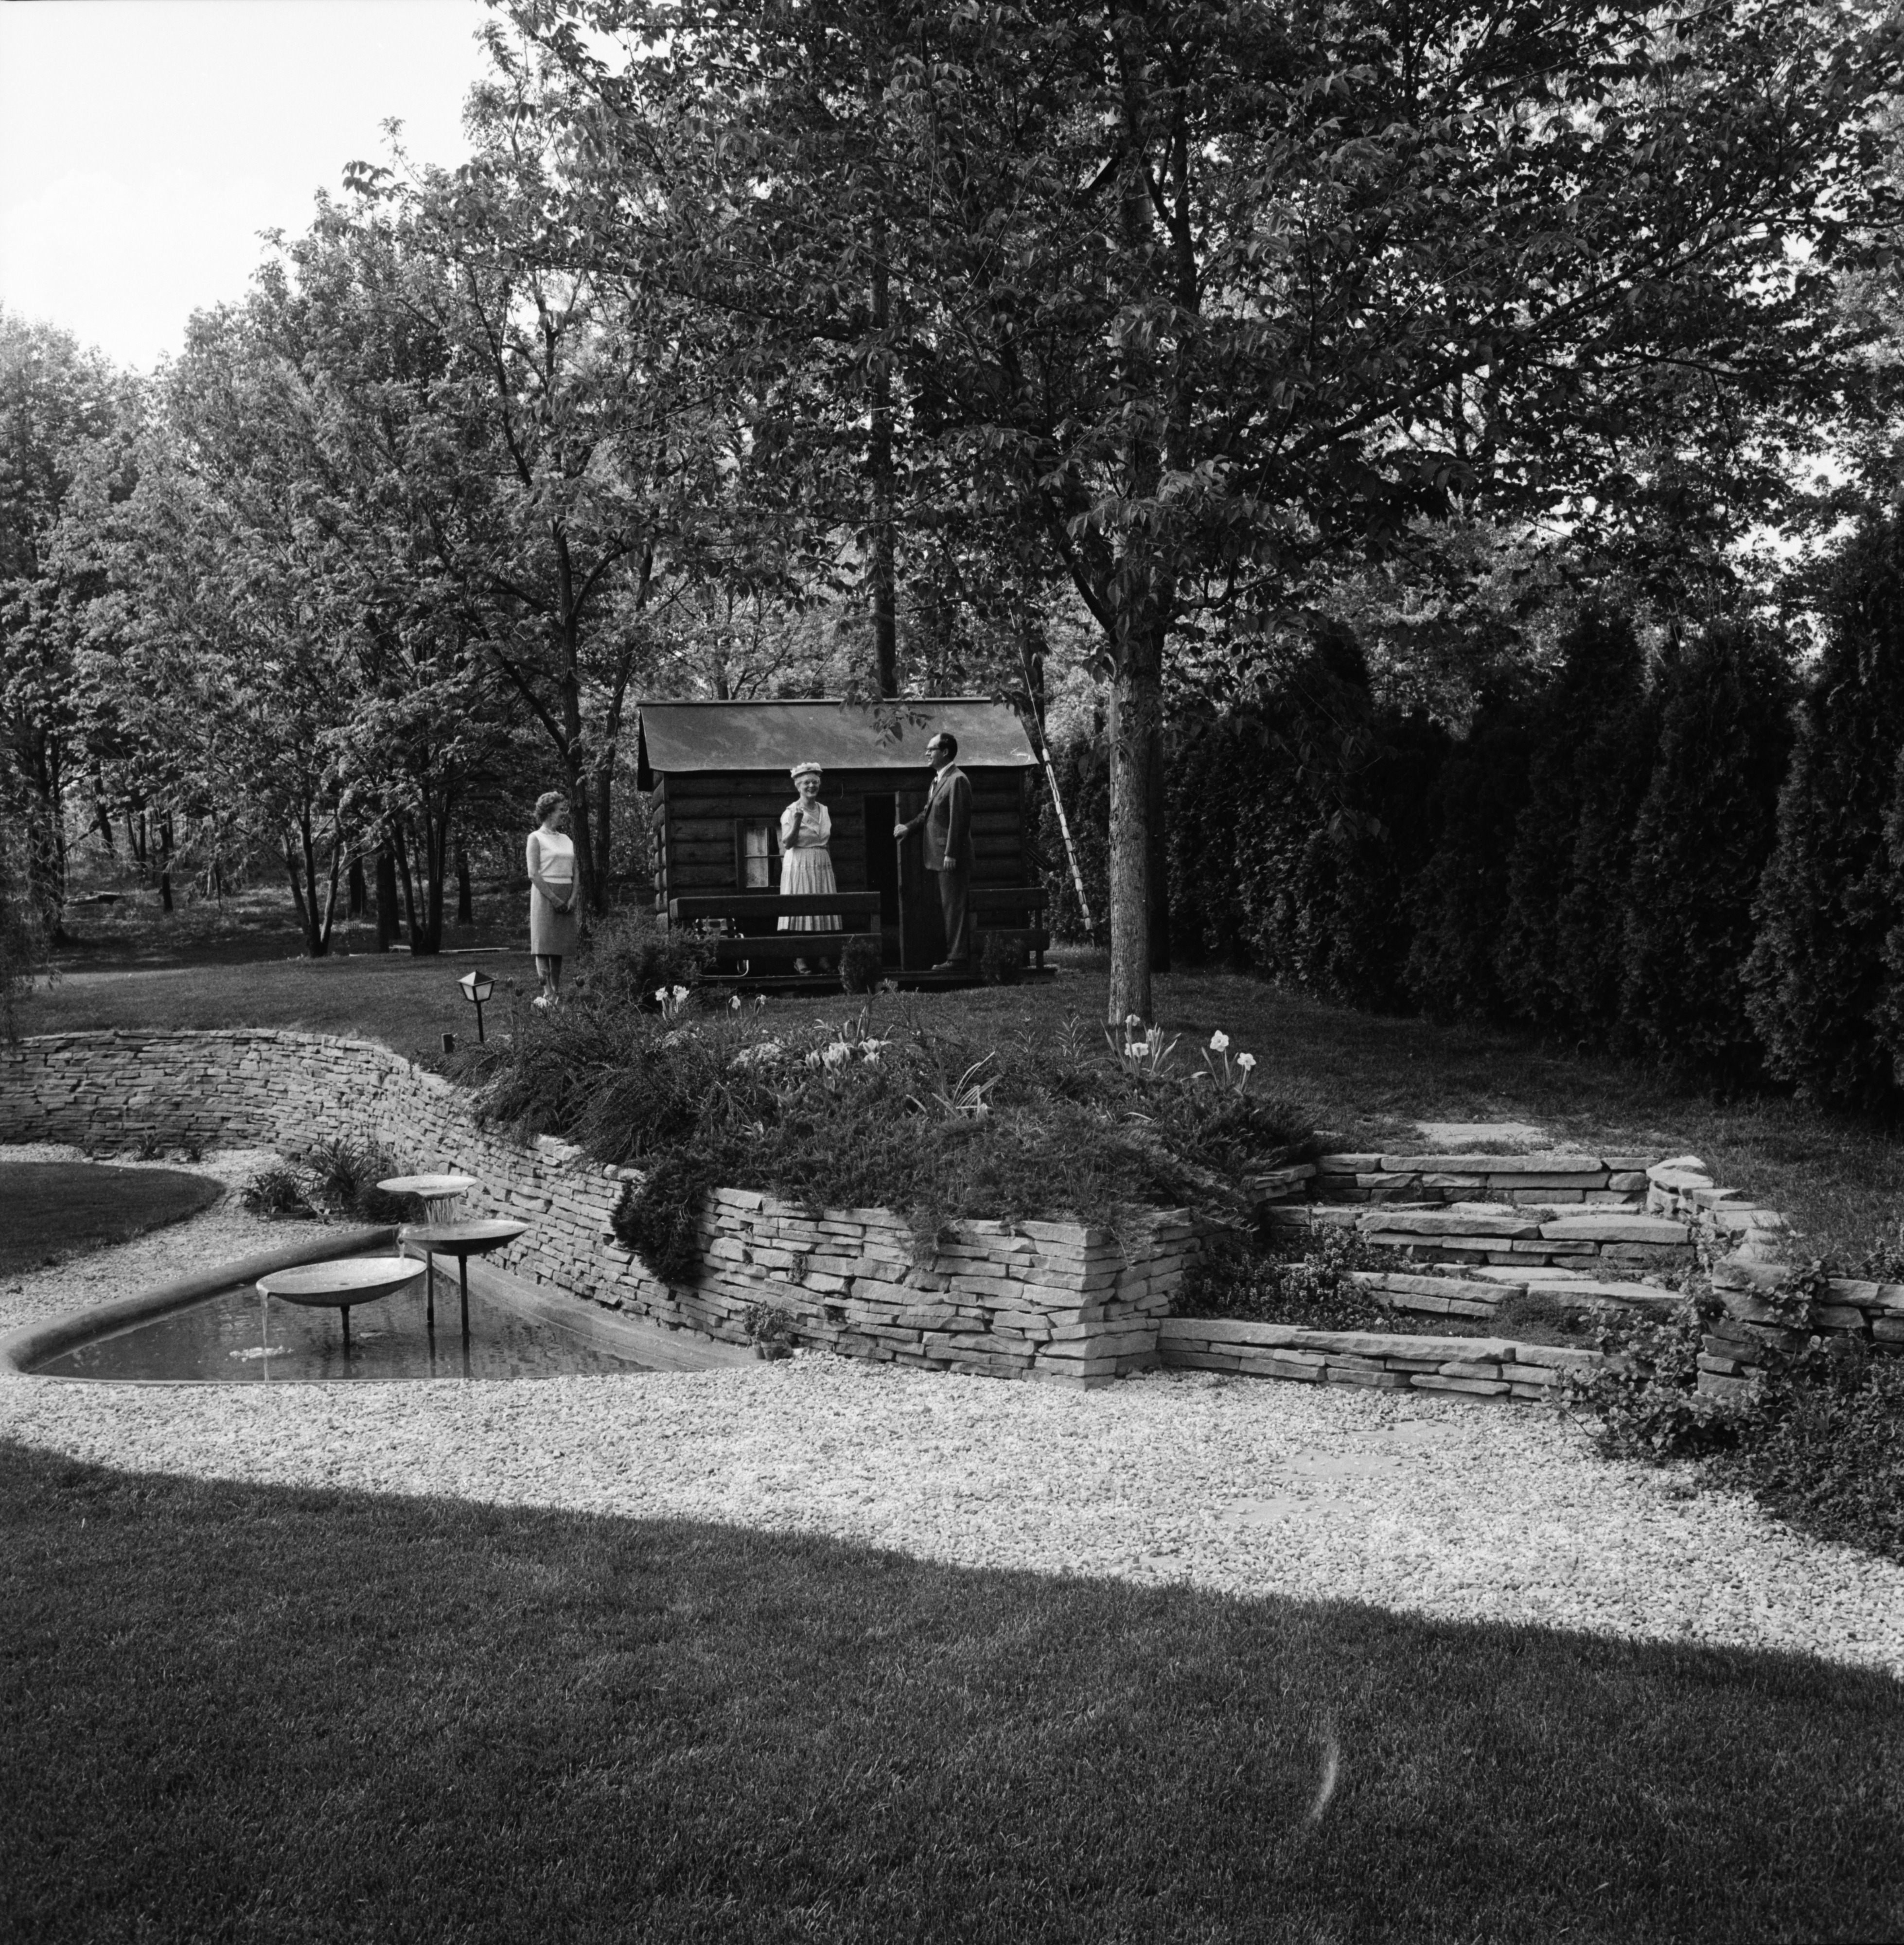 Dr. William Gracie's Garden to be Part of the Ann Arbor Garden Club Tour  image